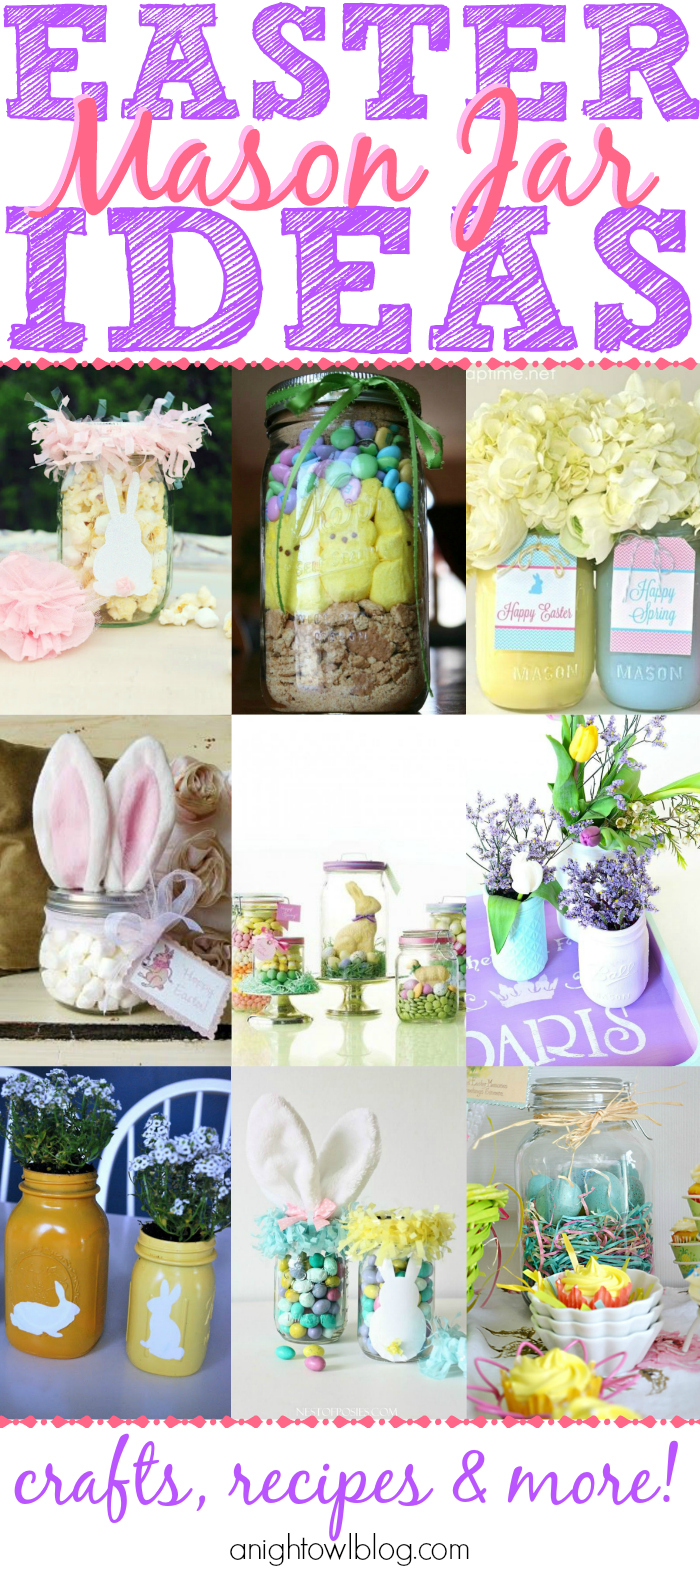 Easter Mason Jar Ideas - such a great list of easy and adorable Easter decor, crafts and more!